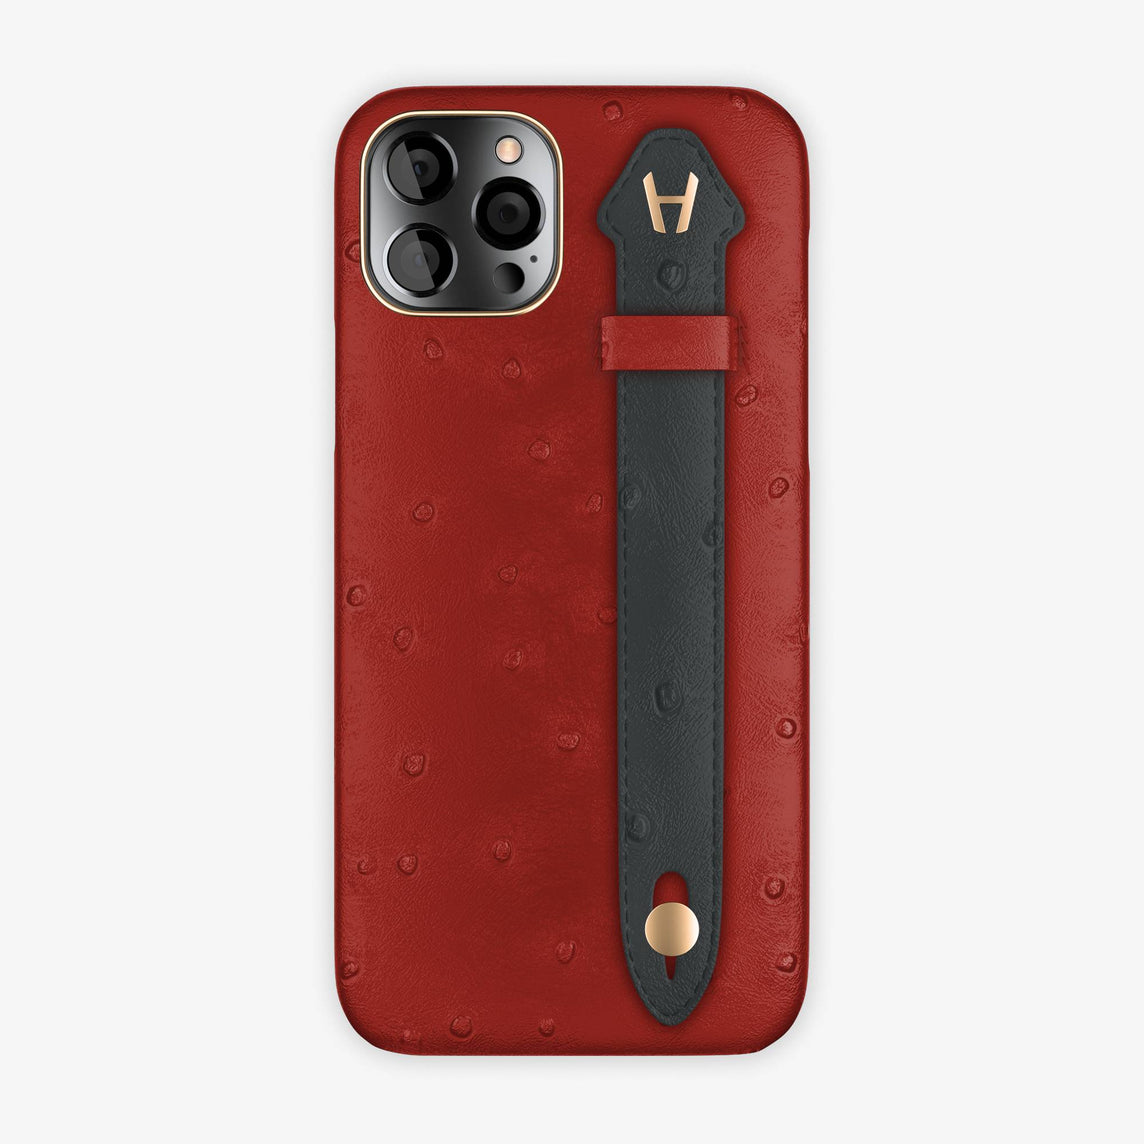 Ostrich Side Finger Case iPhone 12 Pro | Red/Anthracite - Rose Gold